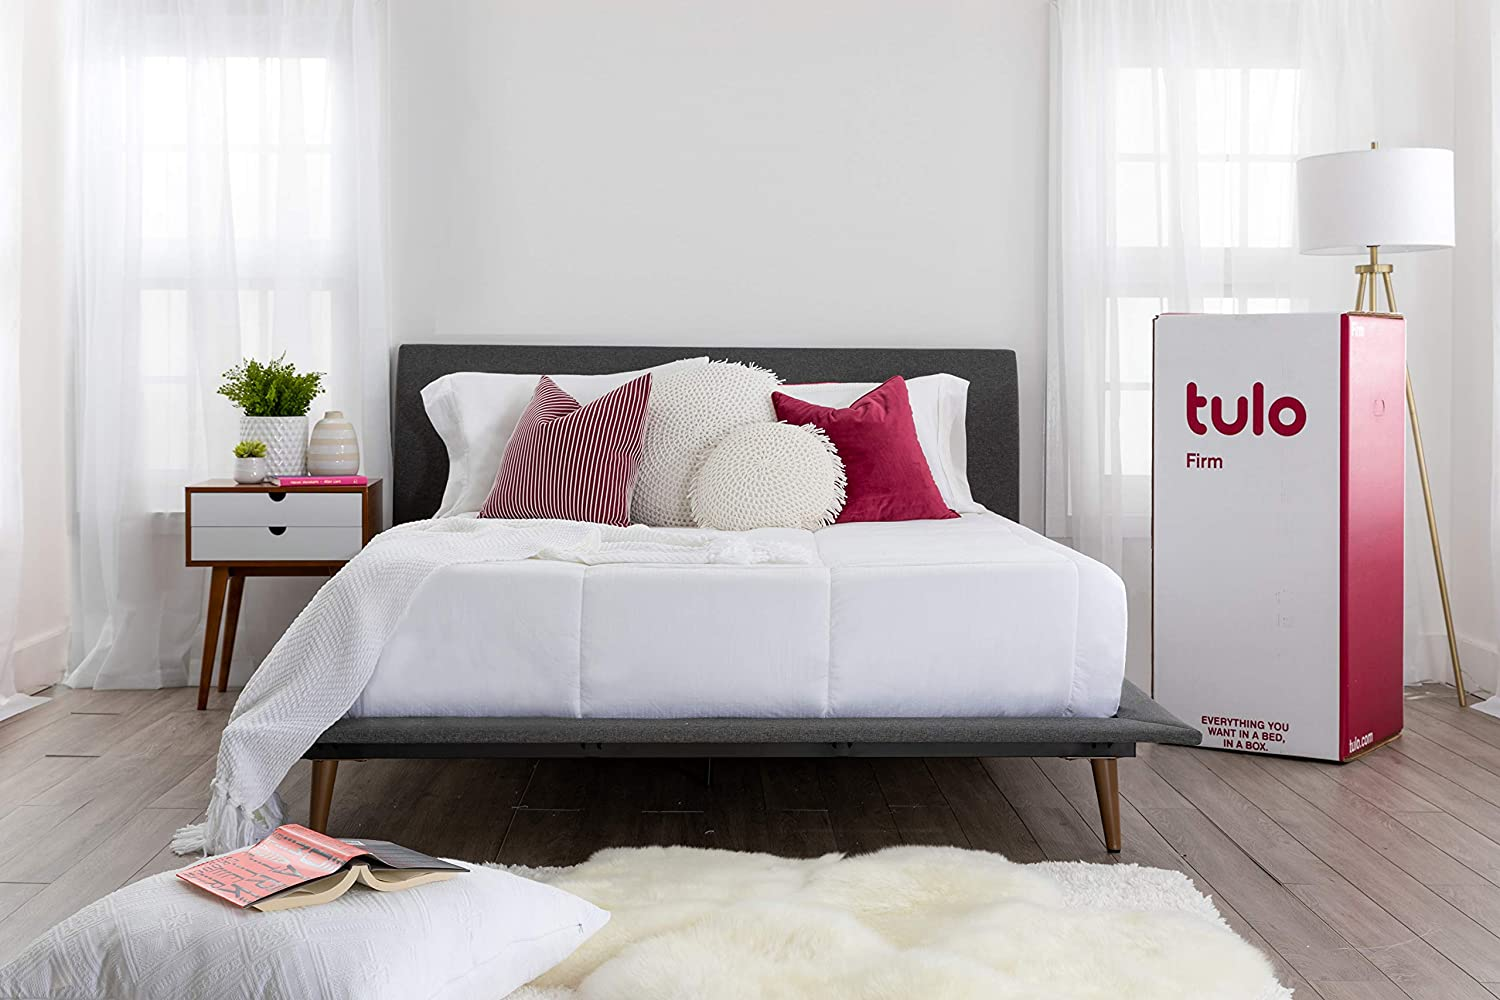 Mattress by tulo, Pick your Comfort Level, Firm King Size 10 inch, Bed in a Box, Great for Sleep and Optimal Body Support